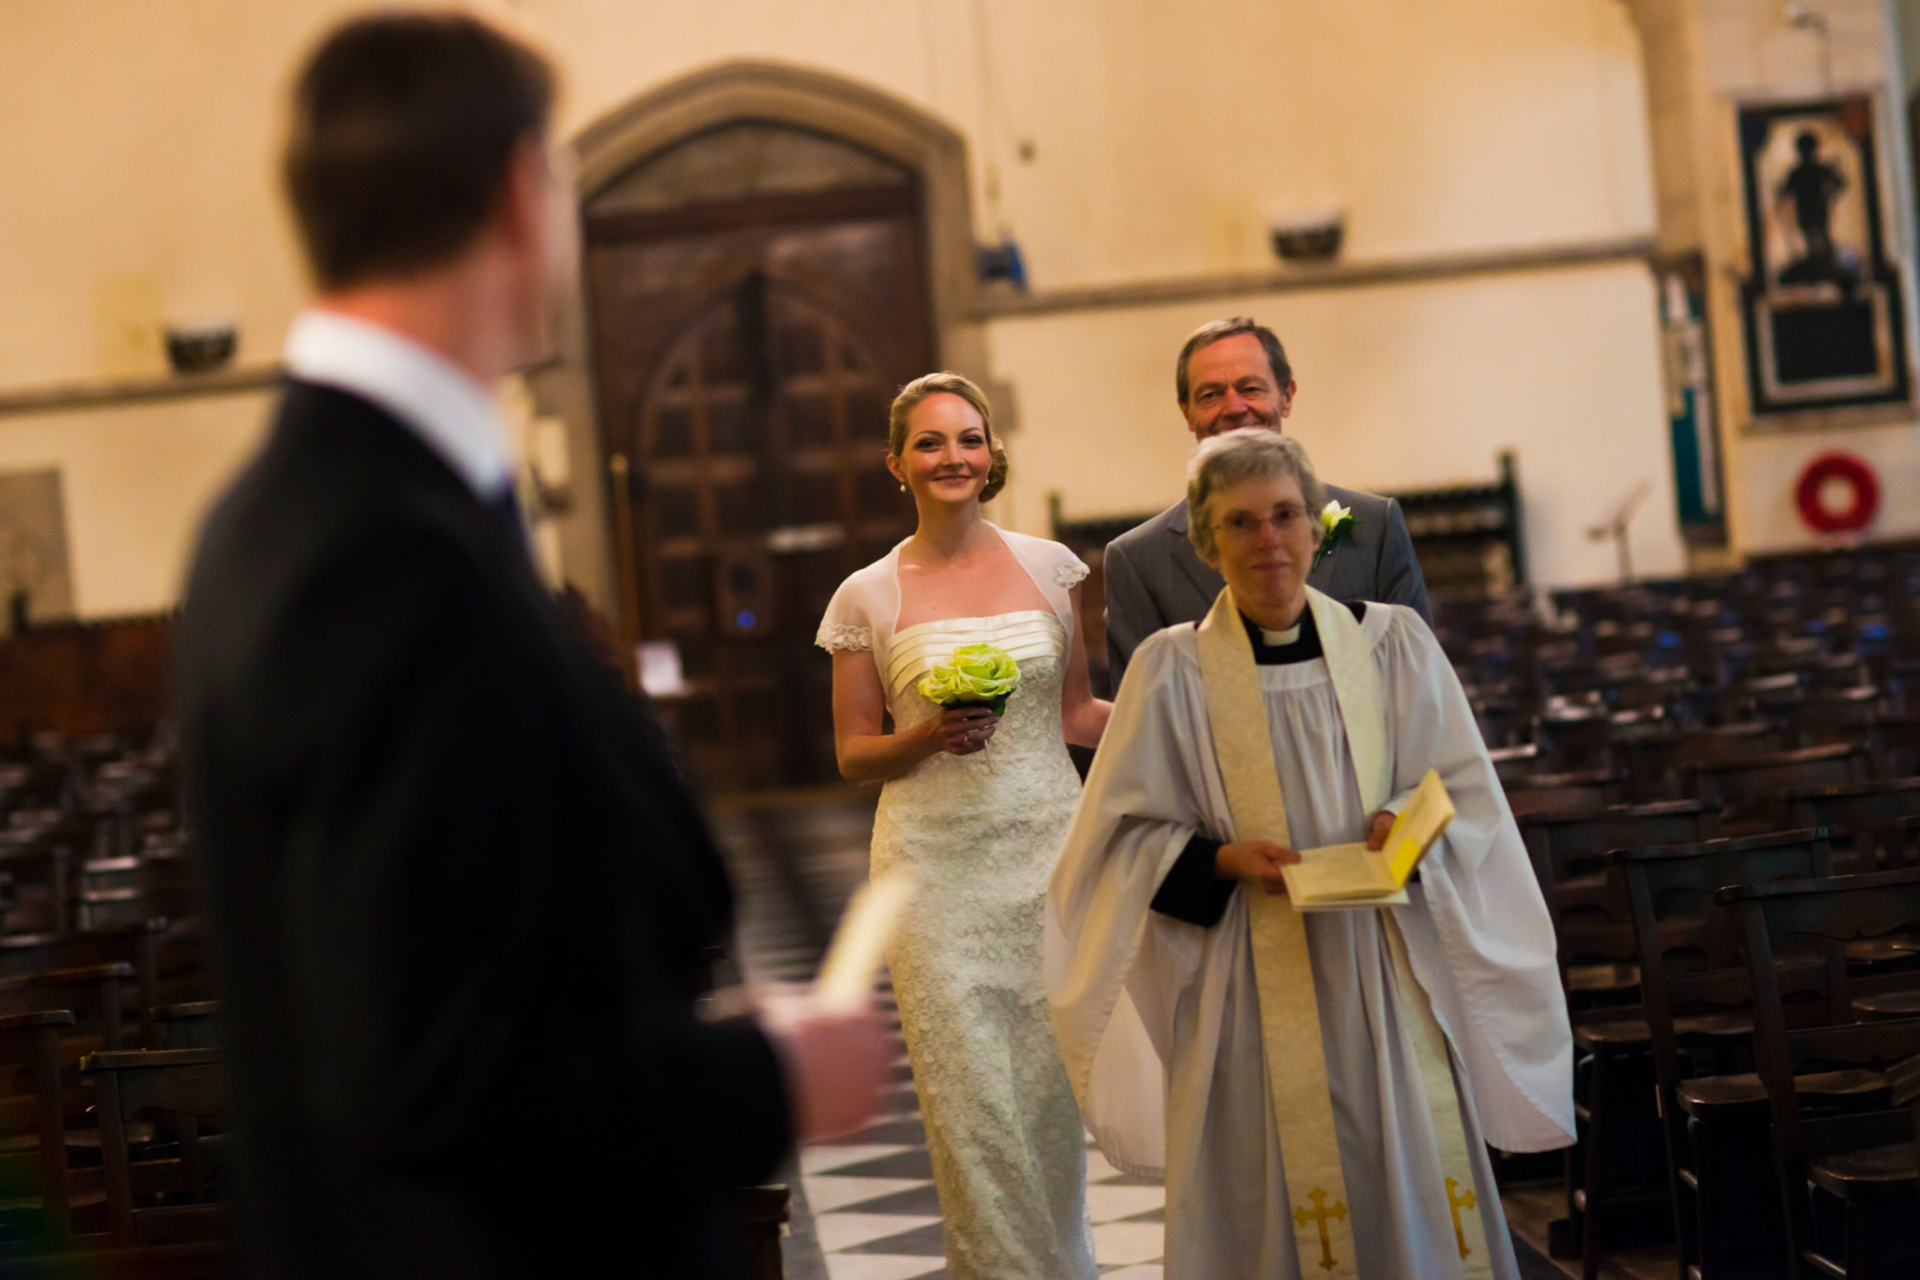 All Saints Church of London - Elopement Ceremony Image | The bride arrives at the ceremony where her groom waits for her